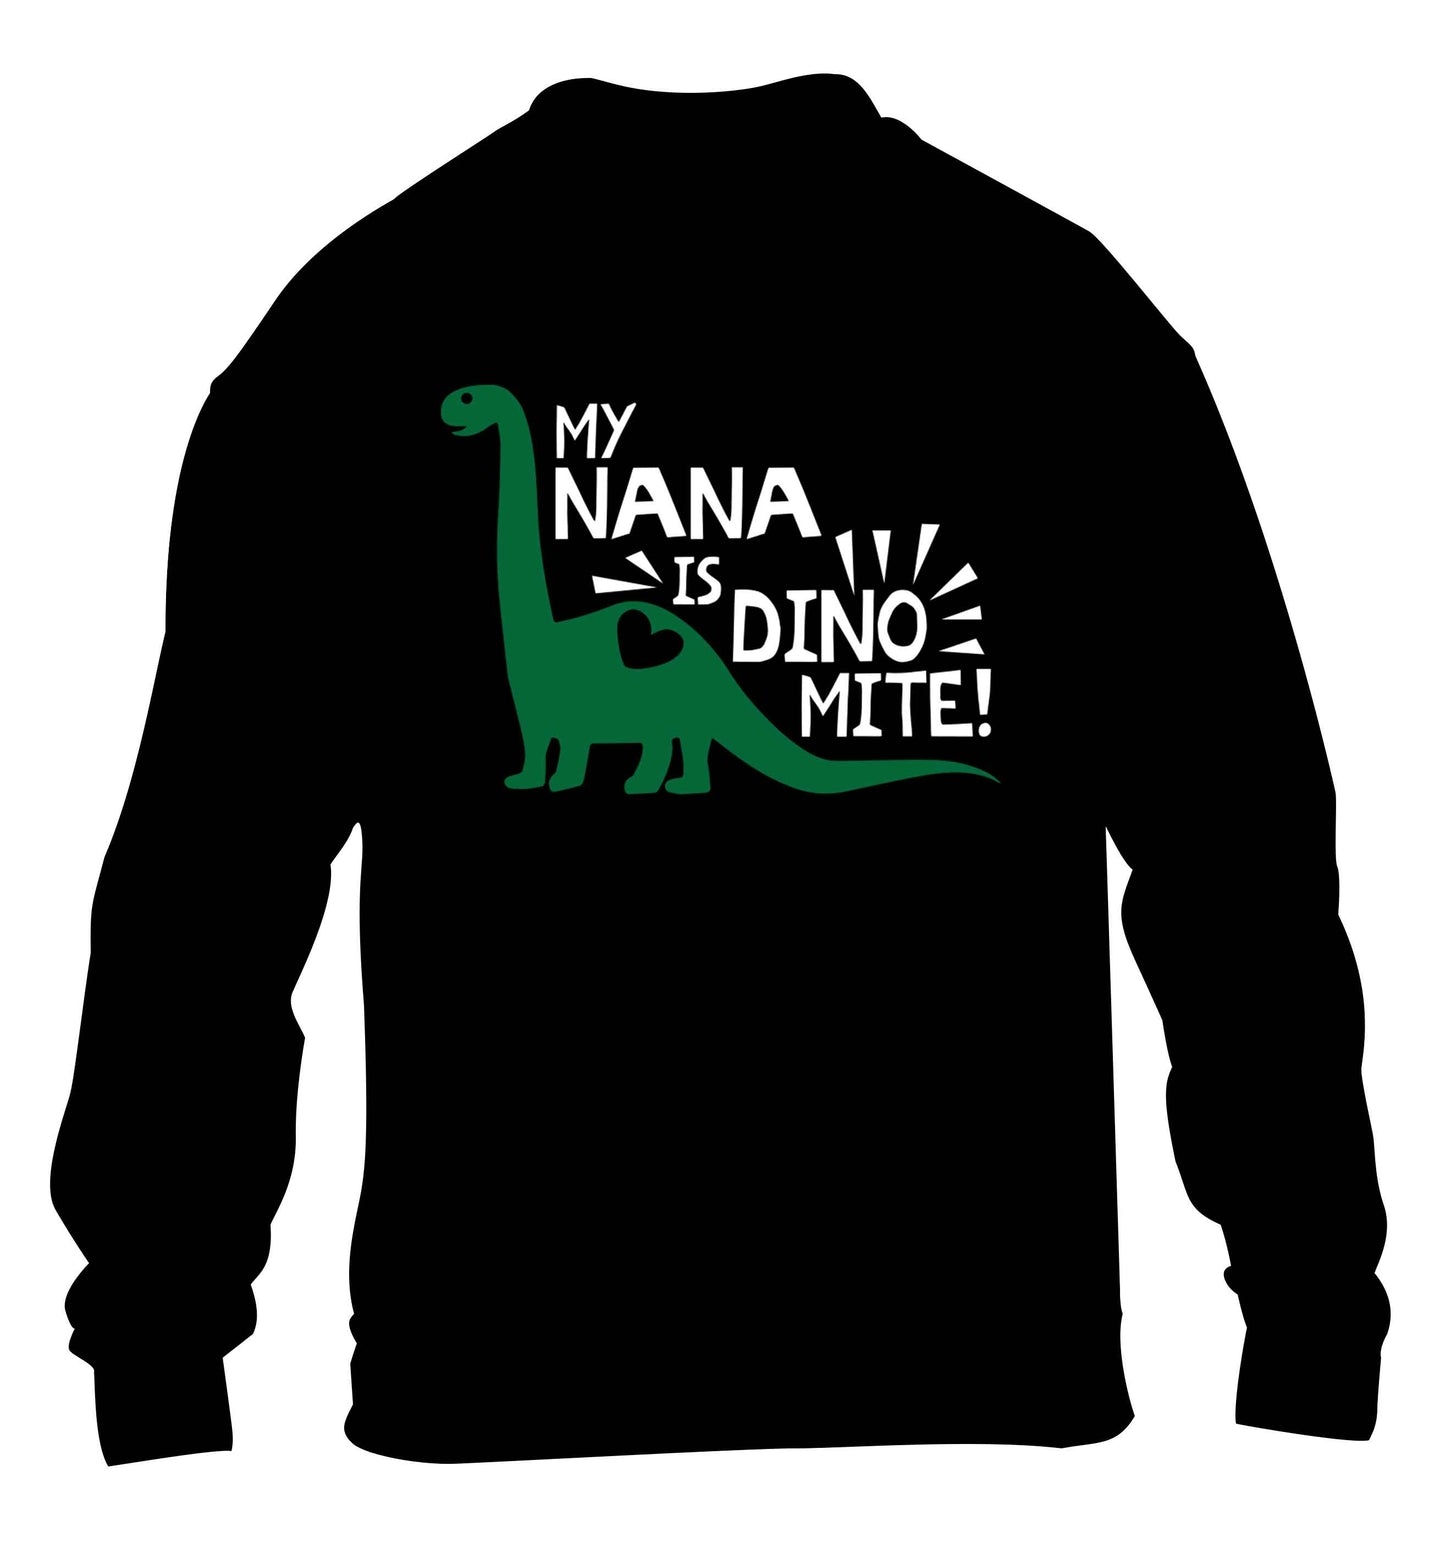 My nana is dinomite! children's black sweater 12-13 Years